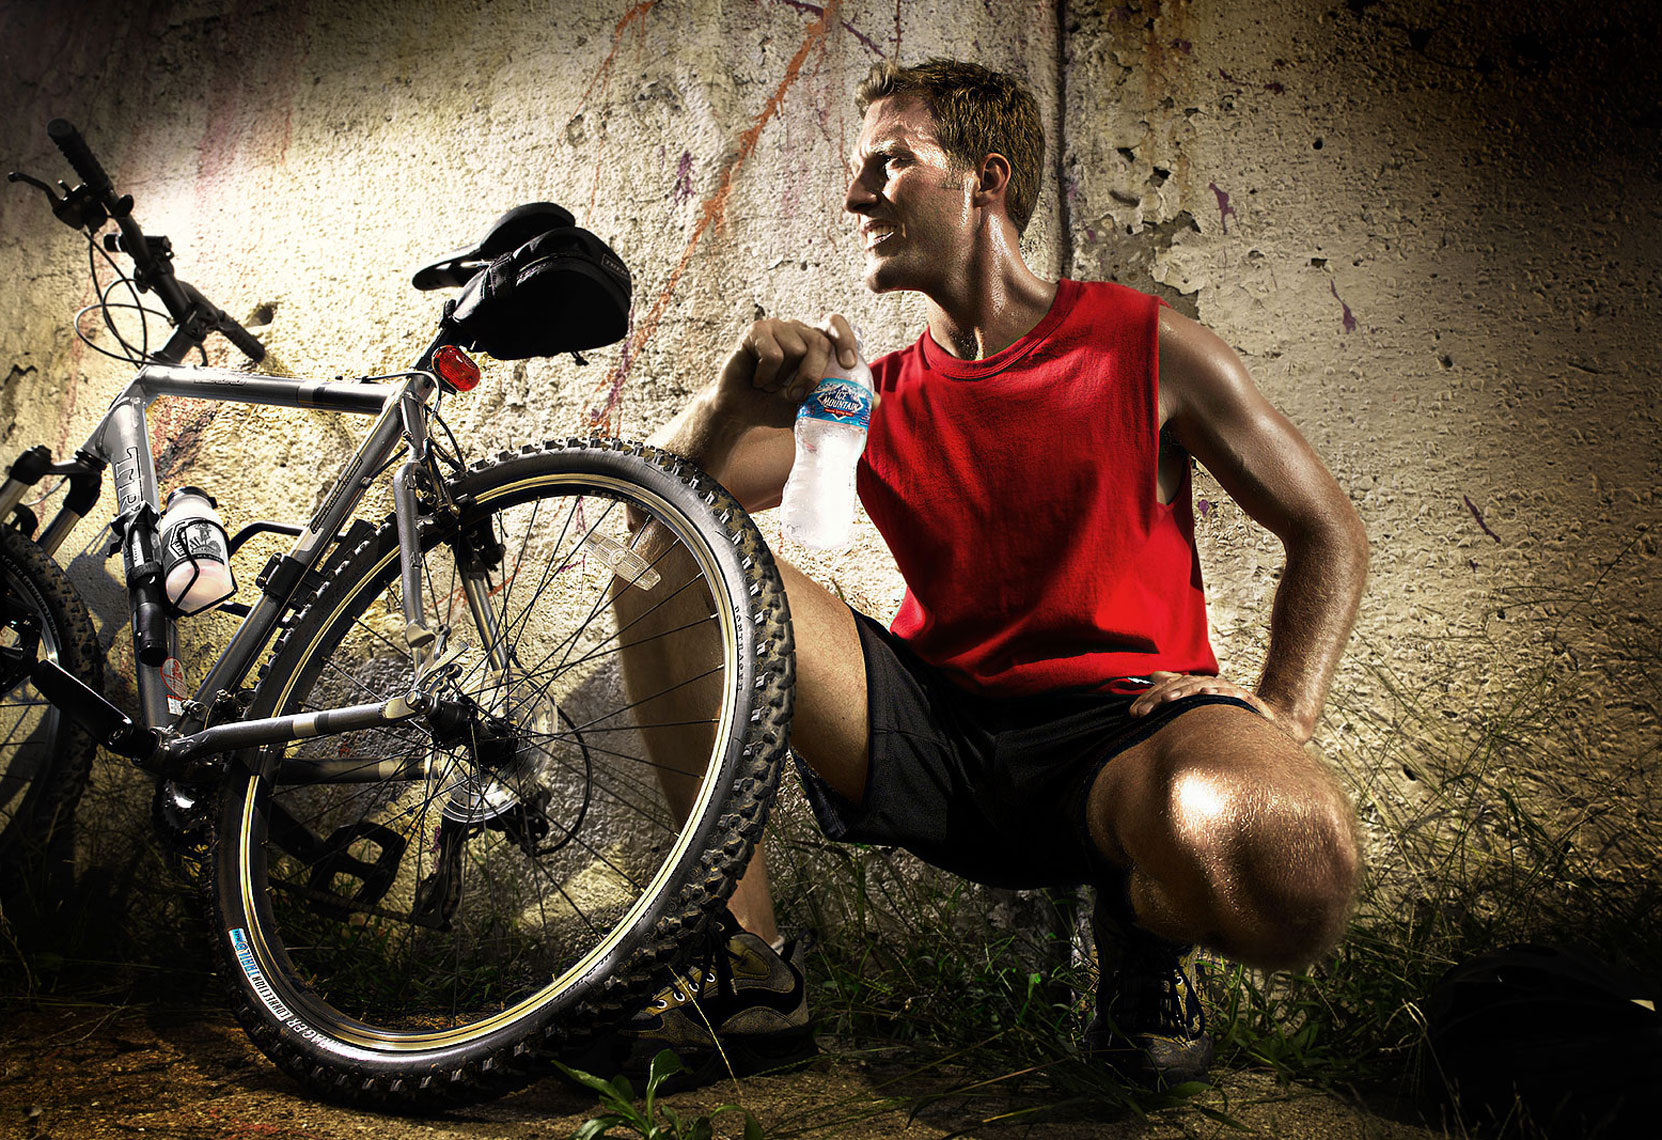 Bike Water_001| Robert Randall Advertising Photographer, Commercial Photographer, CGI, Portrait, and Lifestyle Photography